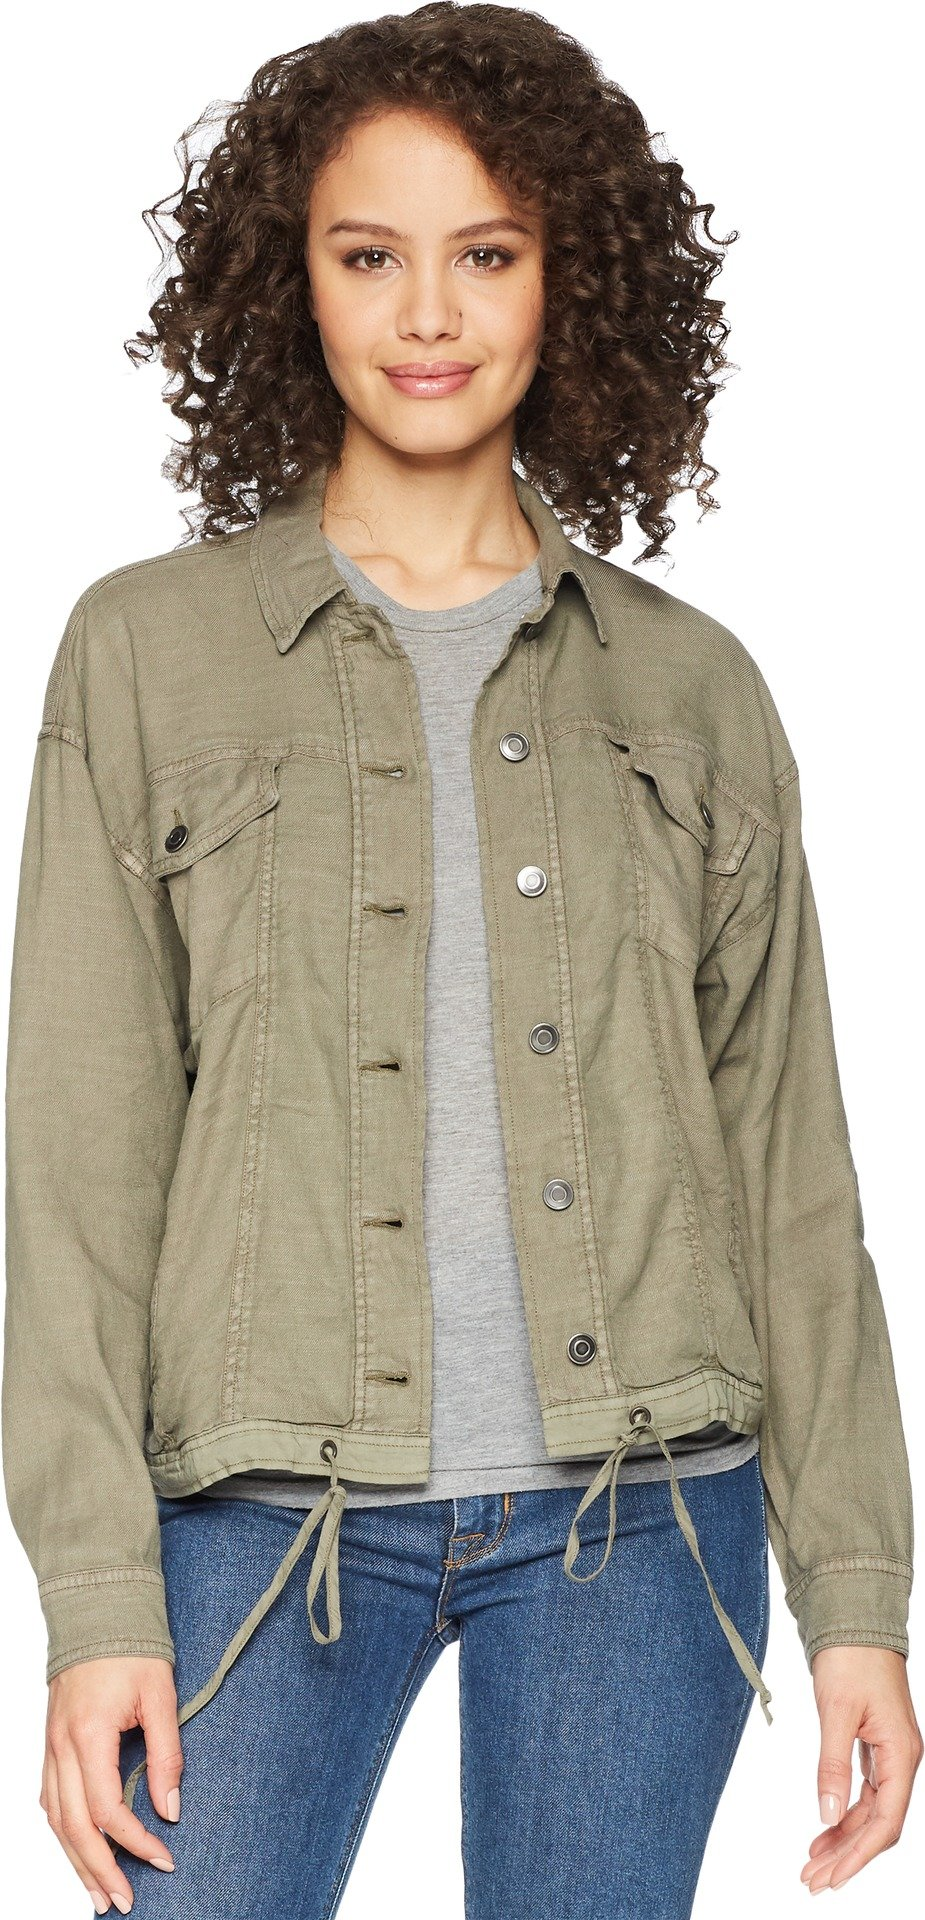 Splendid Women's Dolman Style DNM JKT, Antique Military Olive, S